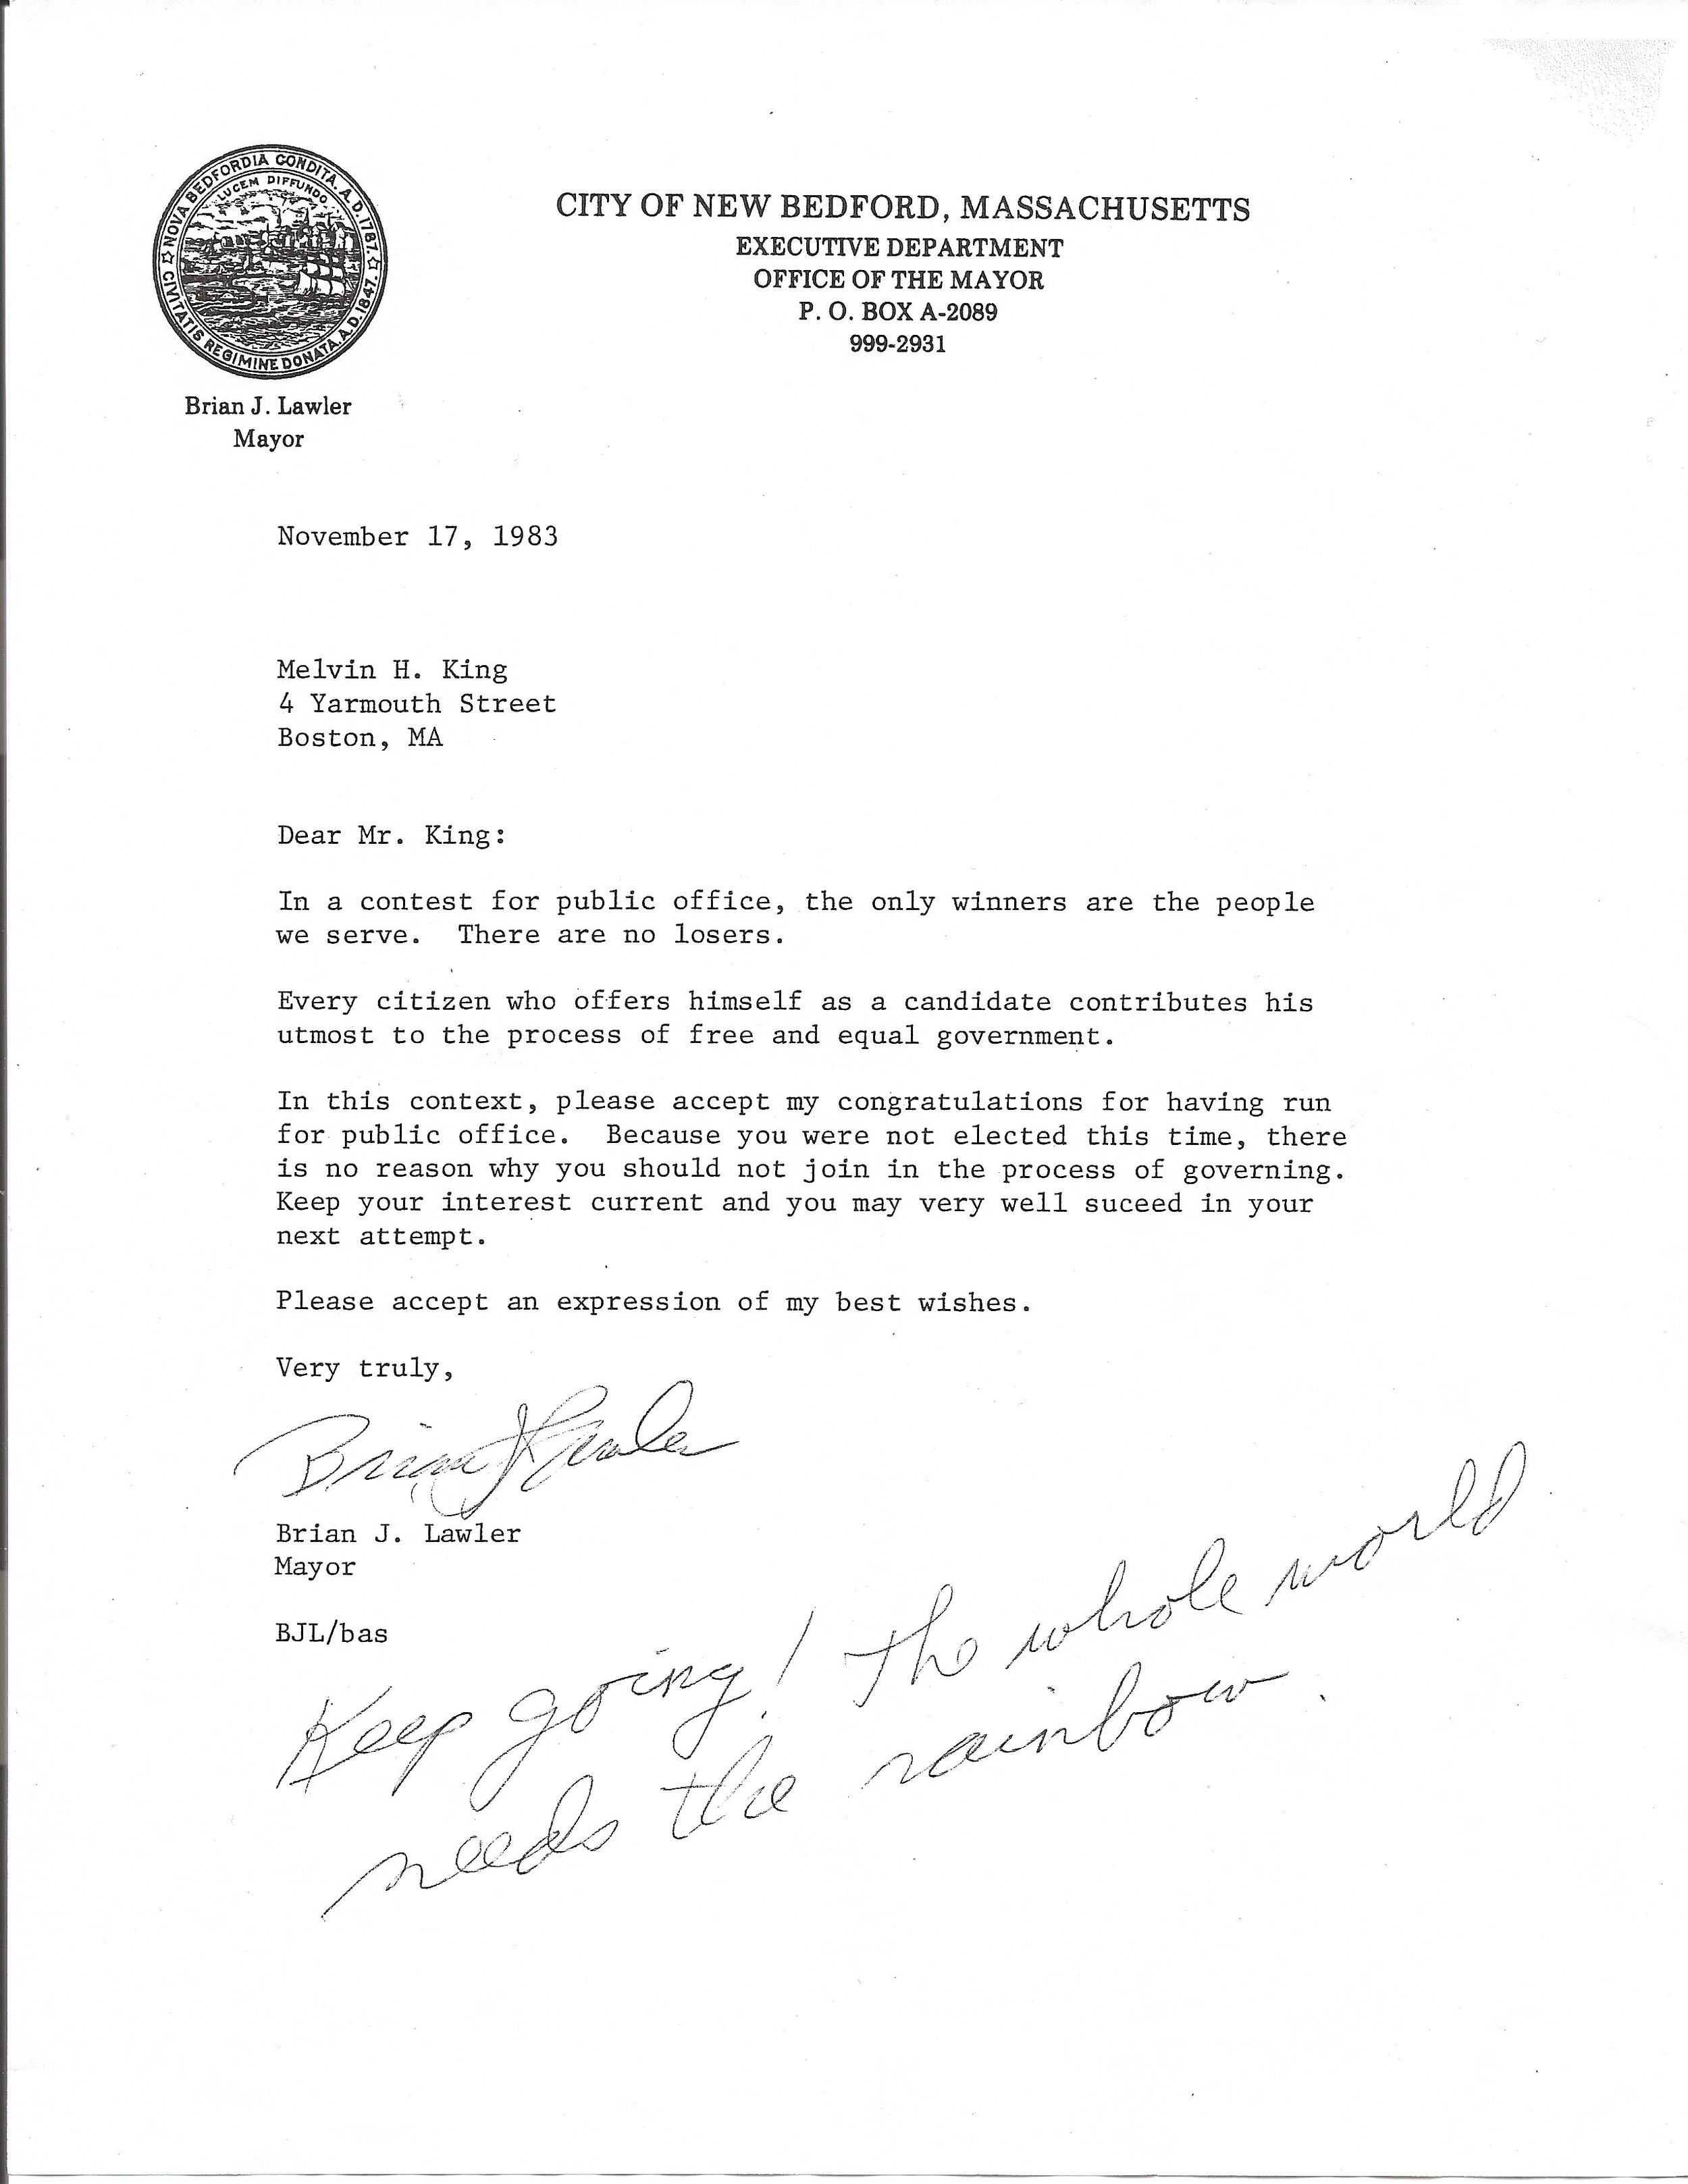 Letter from New Bedford's mayor to Mel King about his mayoral campaign defeat. Mel King Papers, Roxbury Community College.